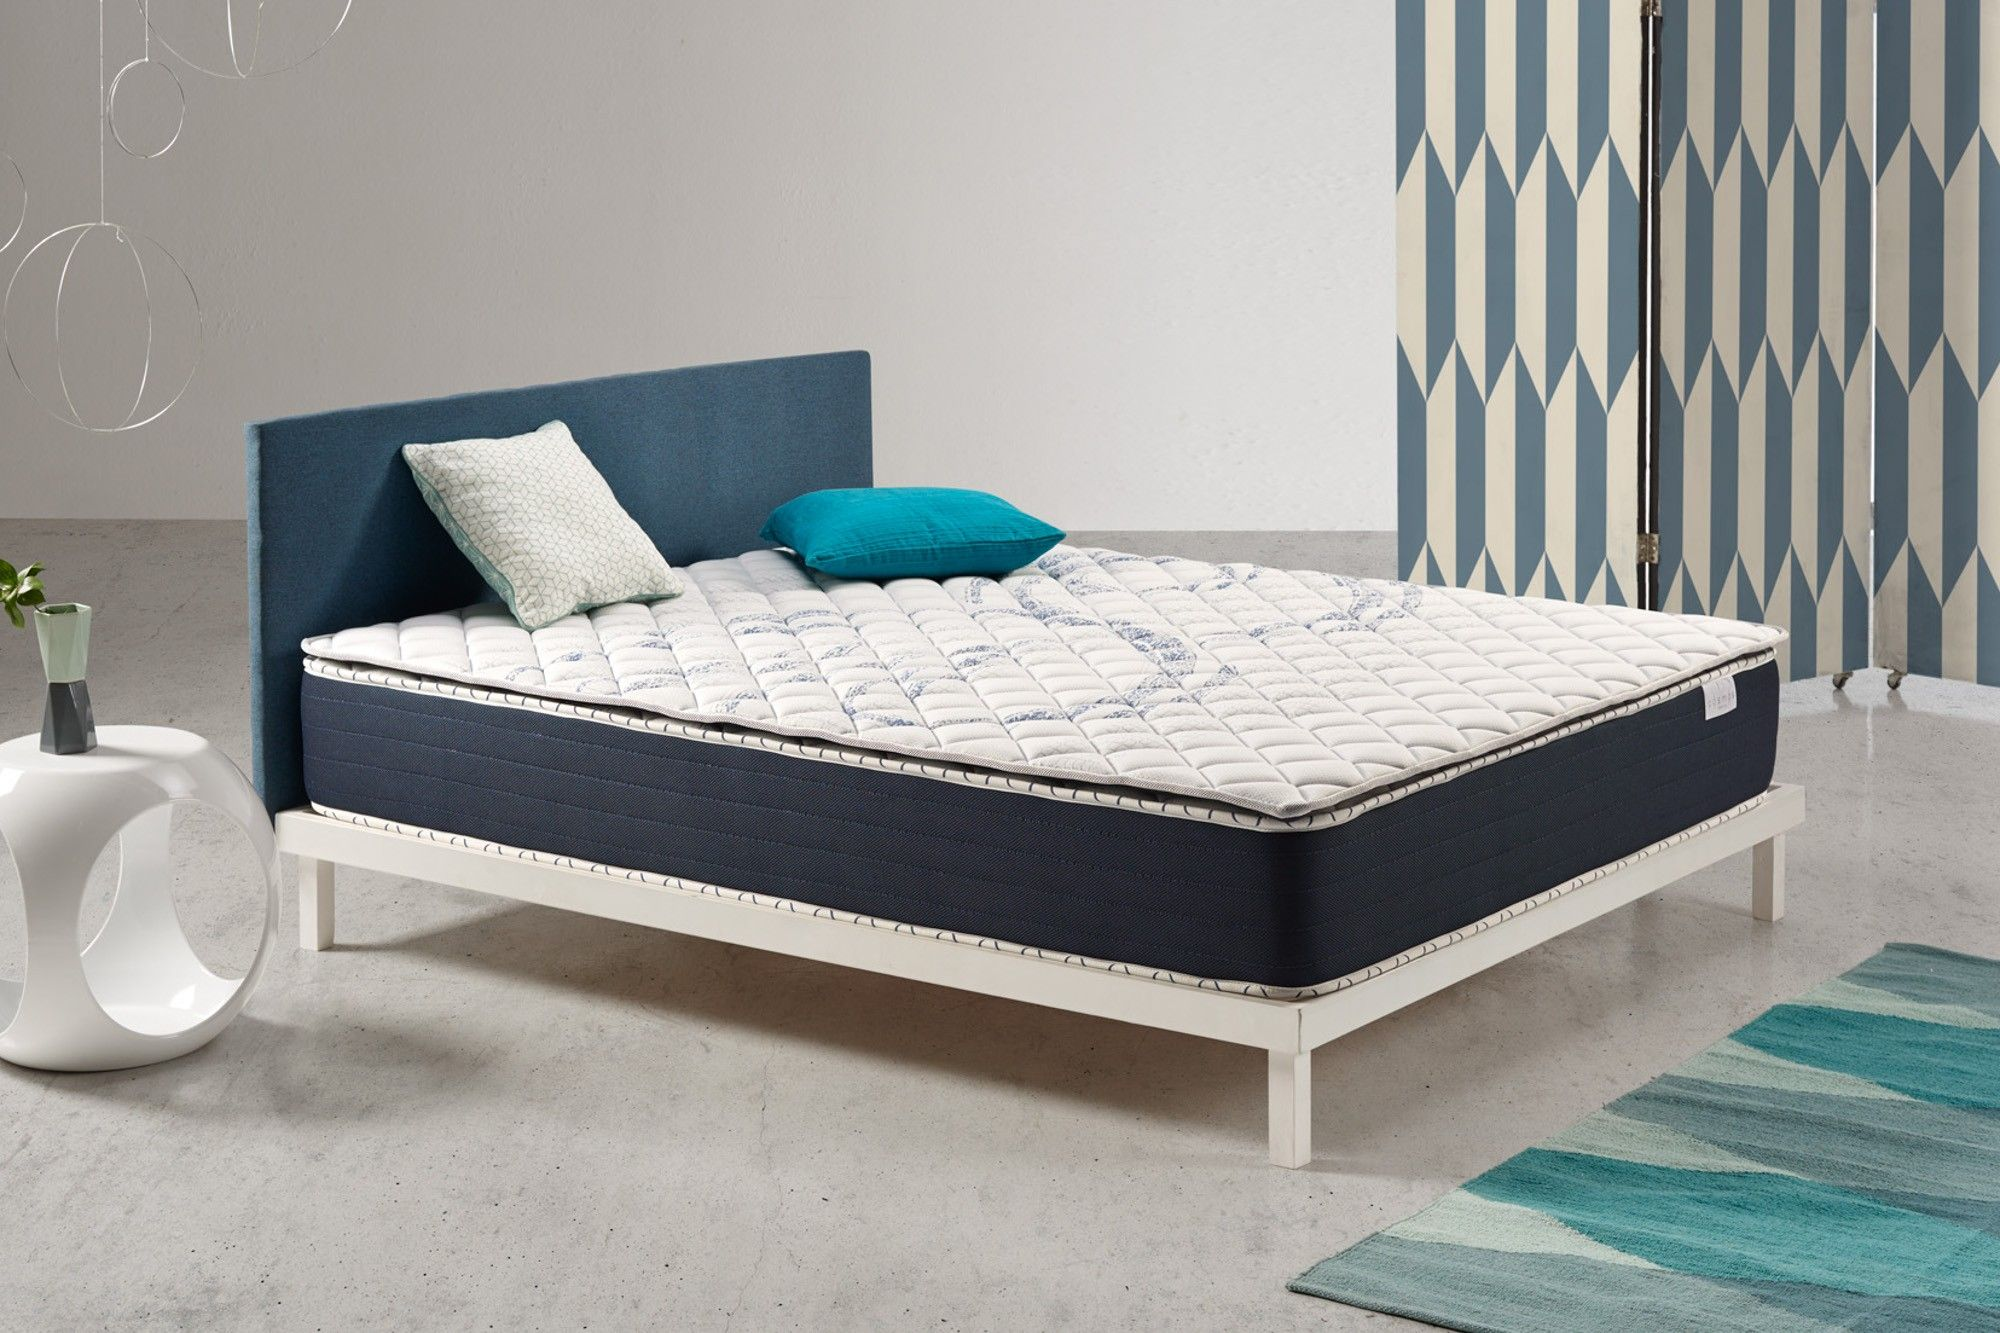 The Atlas high comfort mattress topper has high density memory foam on both the summer and winter sides.